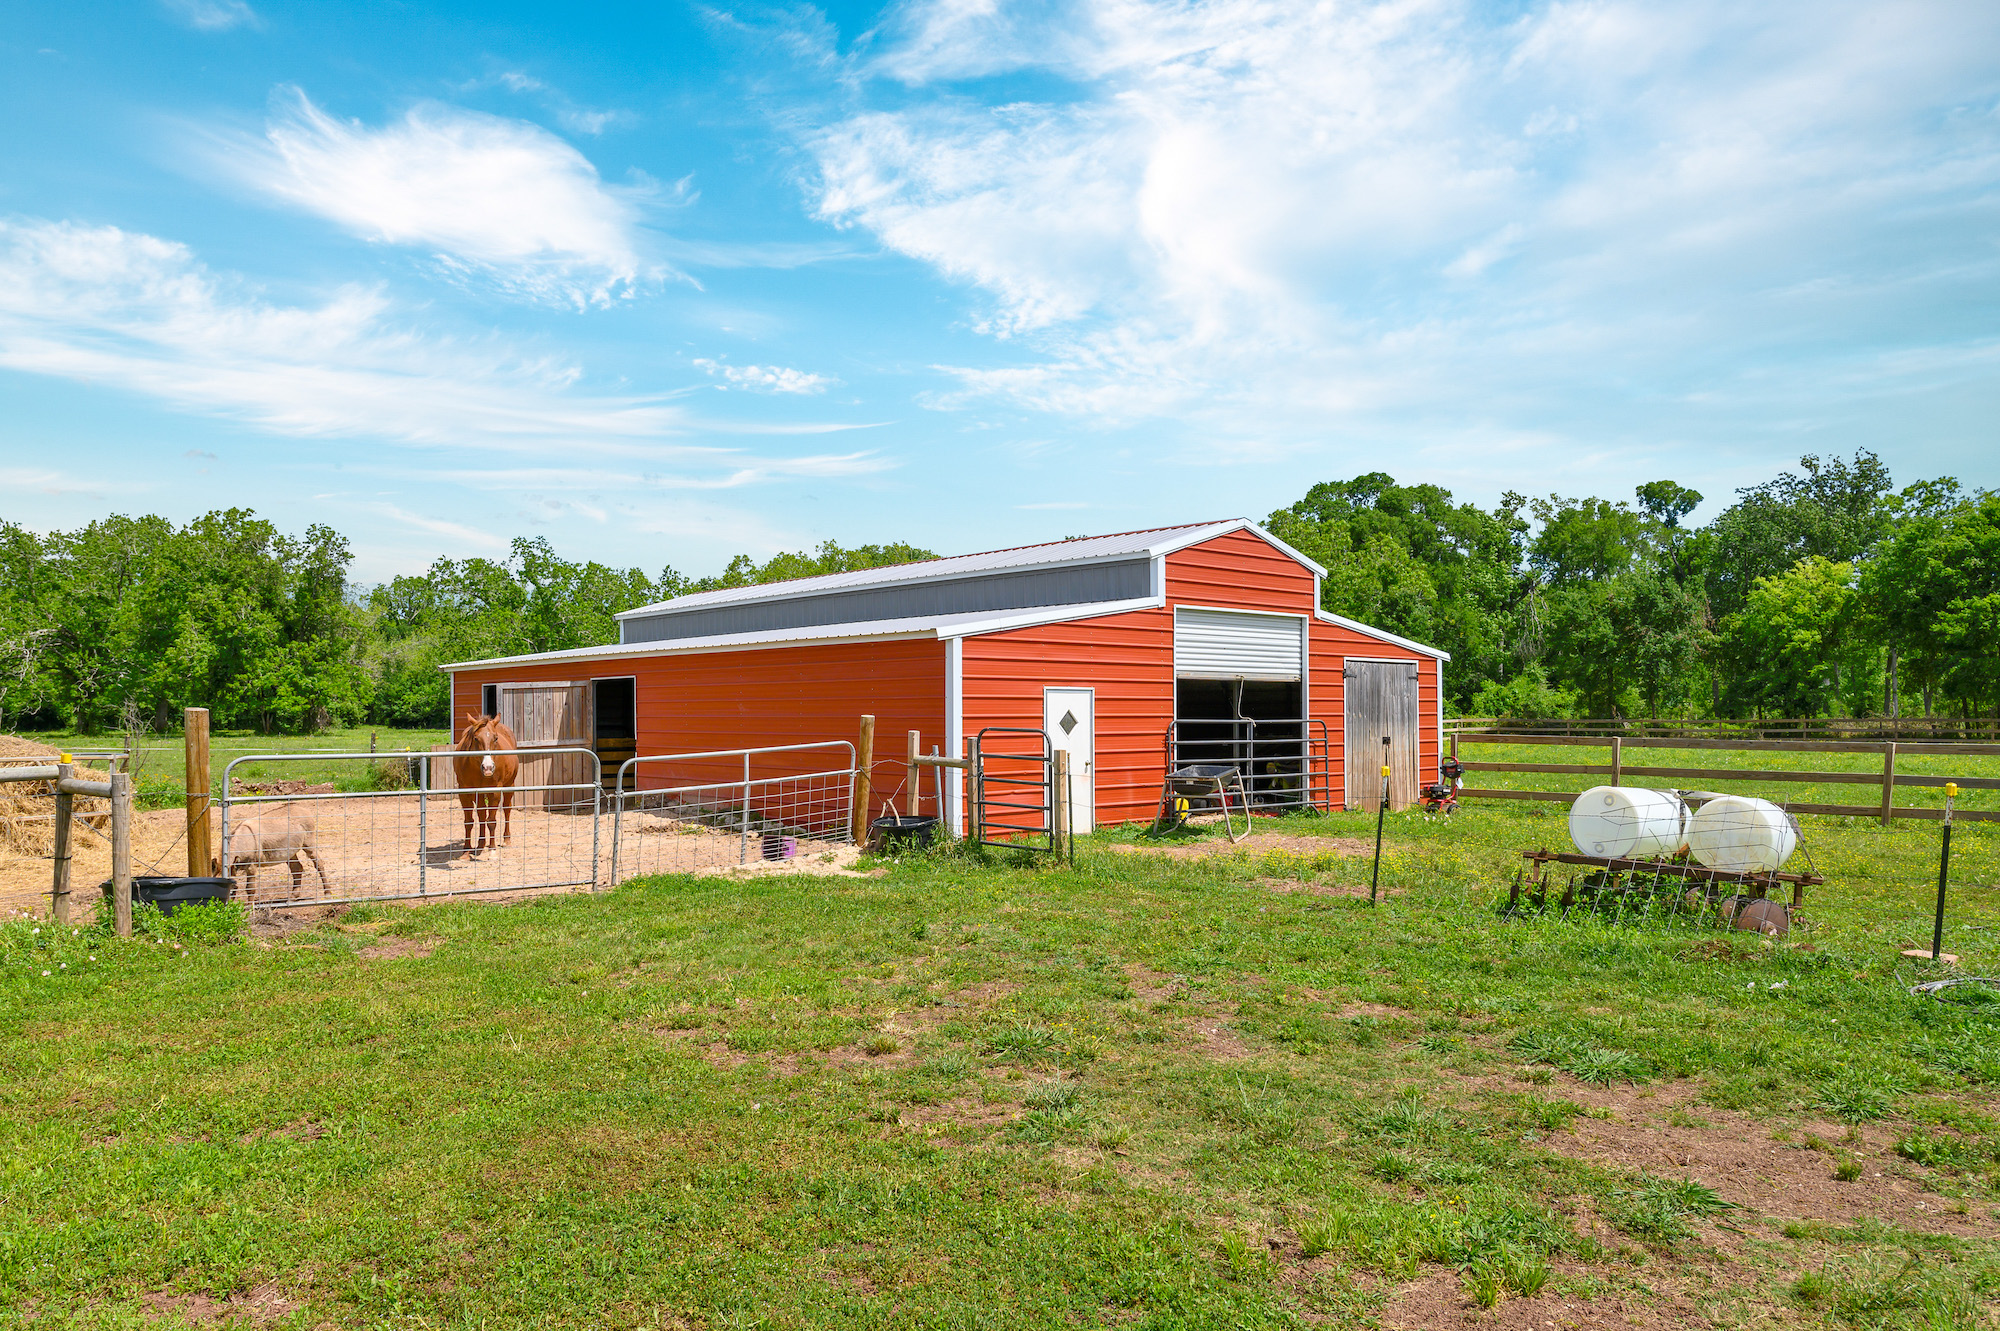 Custom Country Home with Acreage in Sealy - Image 45 of 46